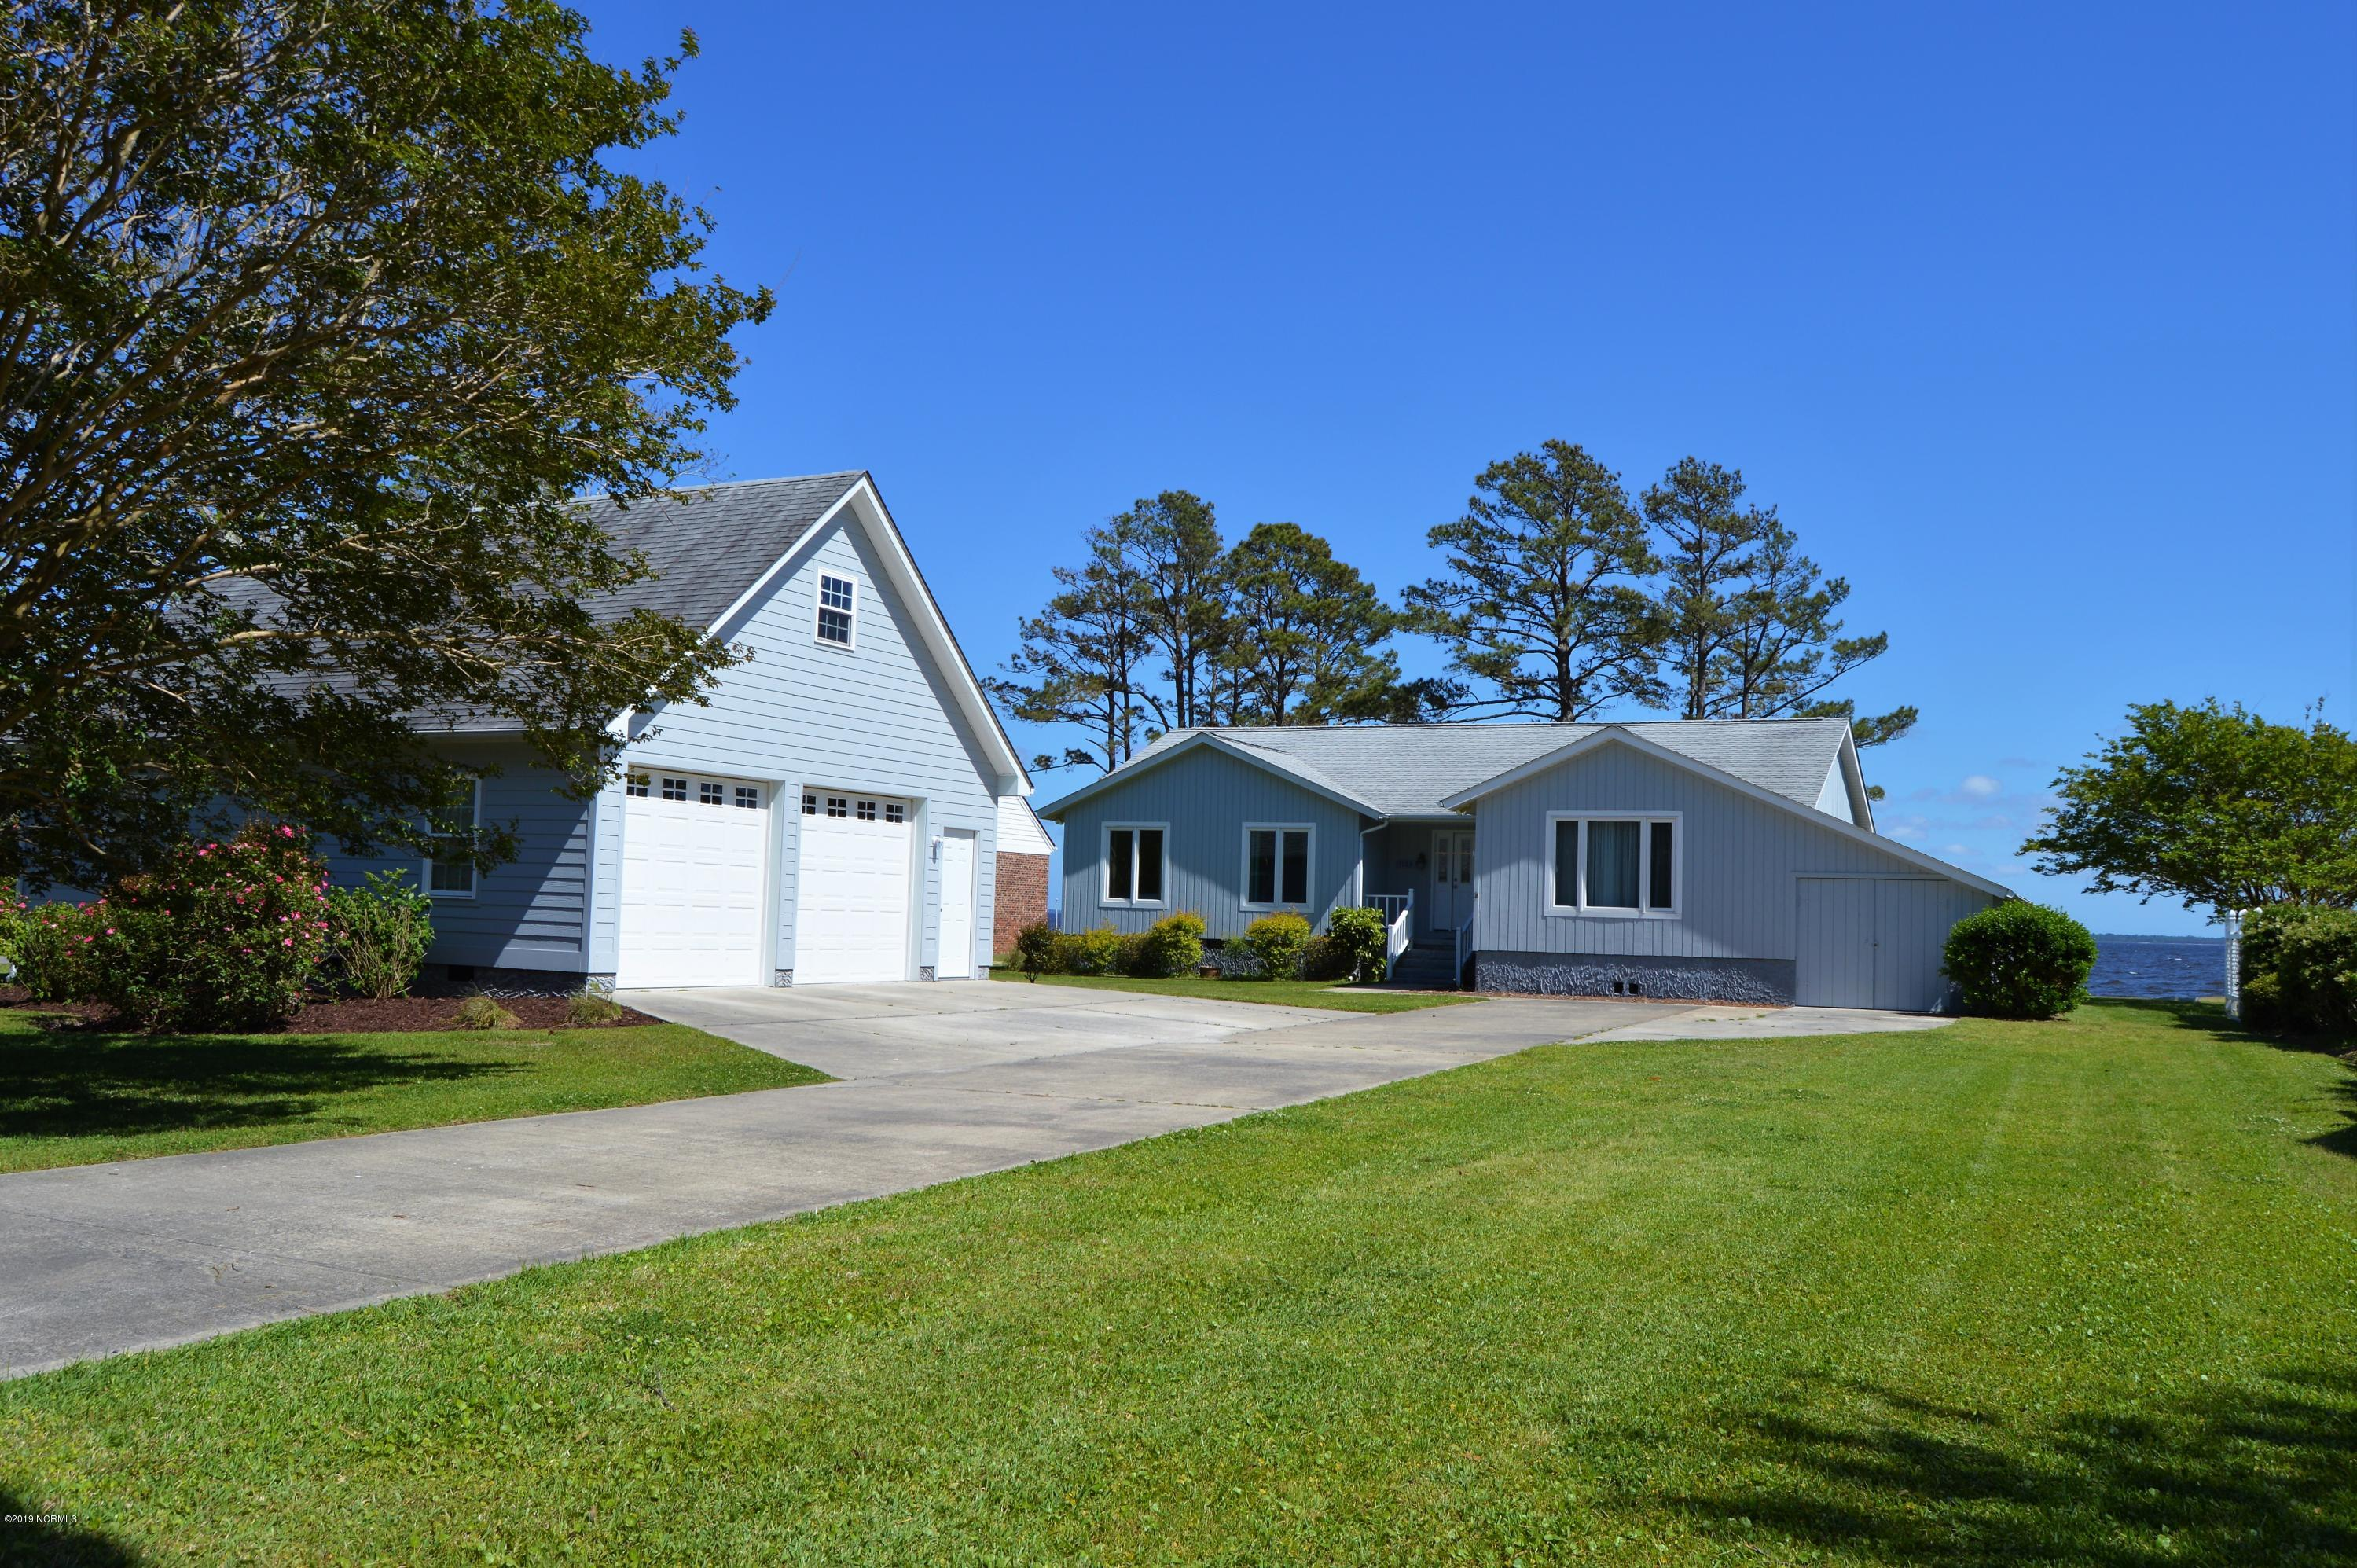 Super Tidewater Listings Waterfront Homes Tidewater Real Estate Download Free Architecture Designs Scobabritishbridgeorg